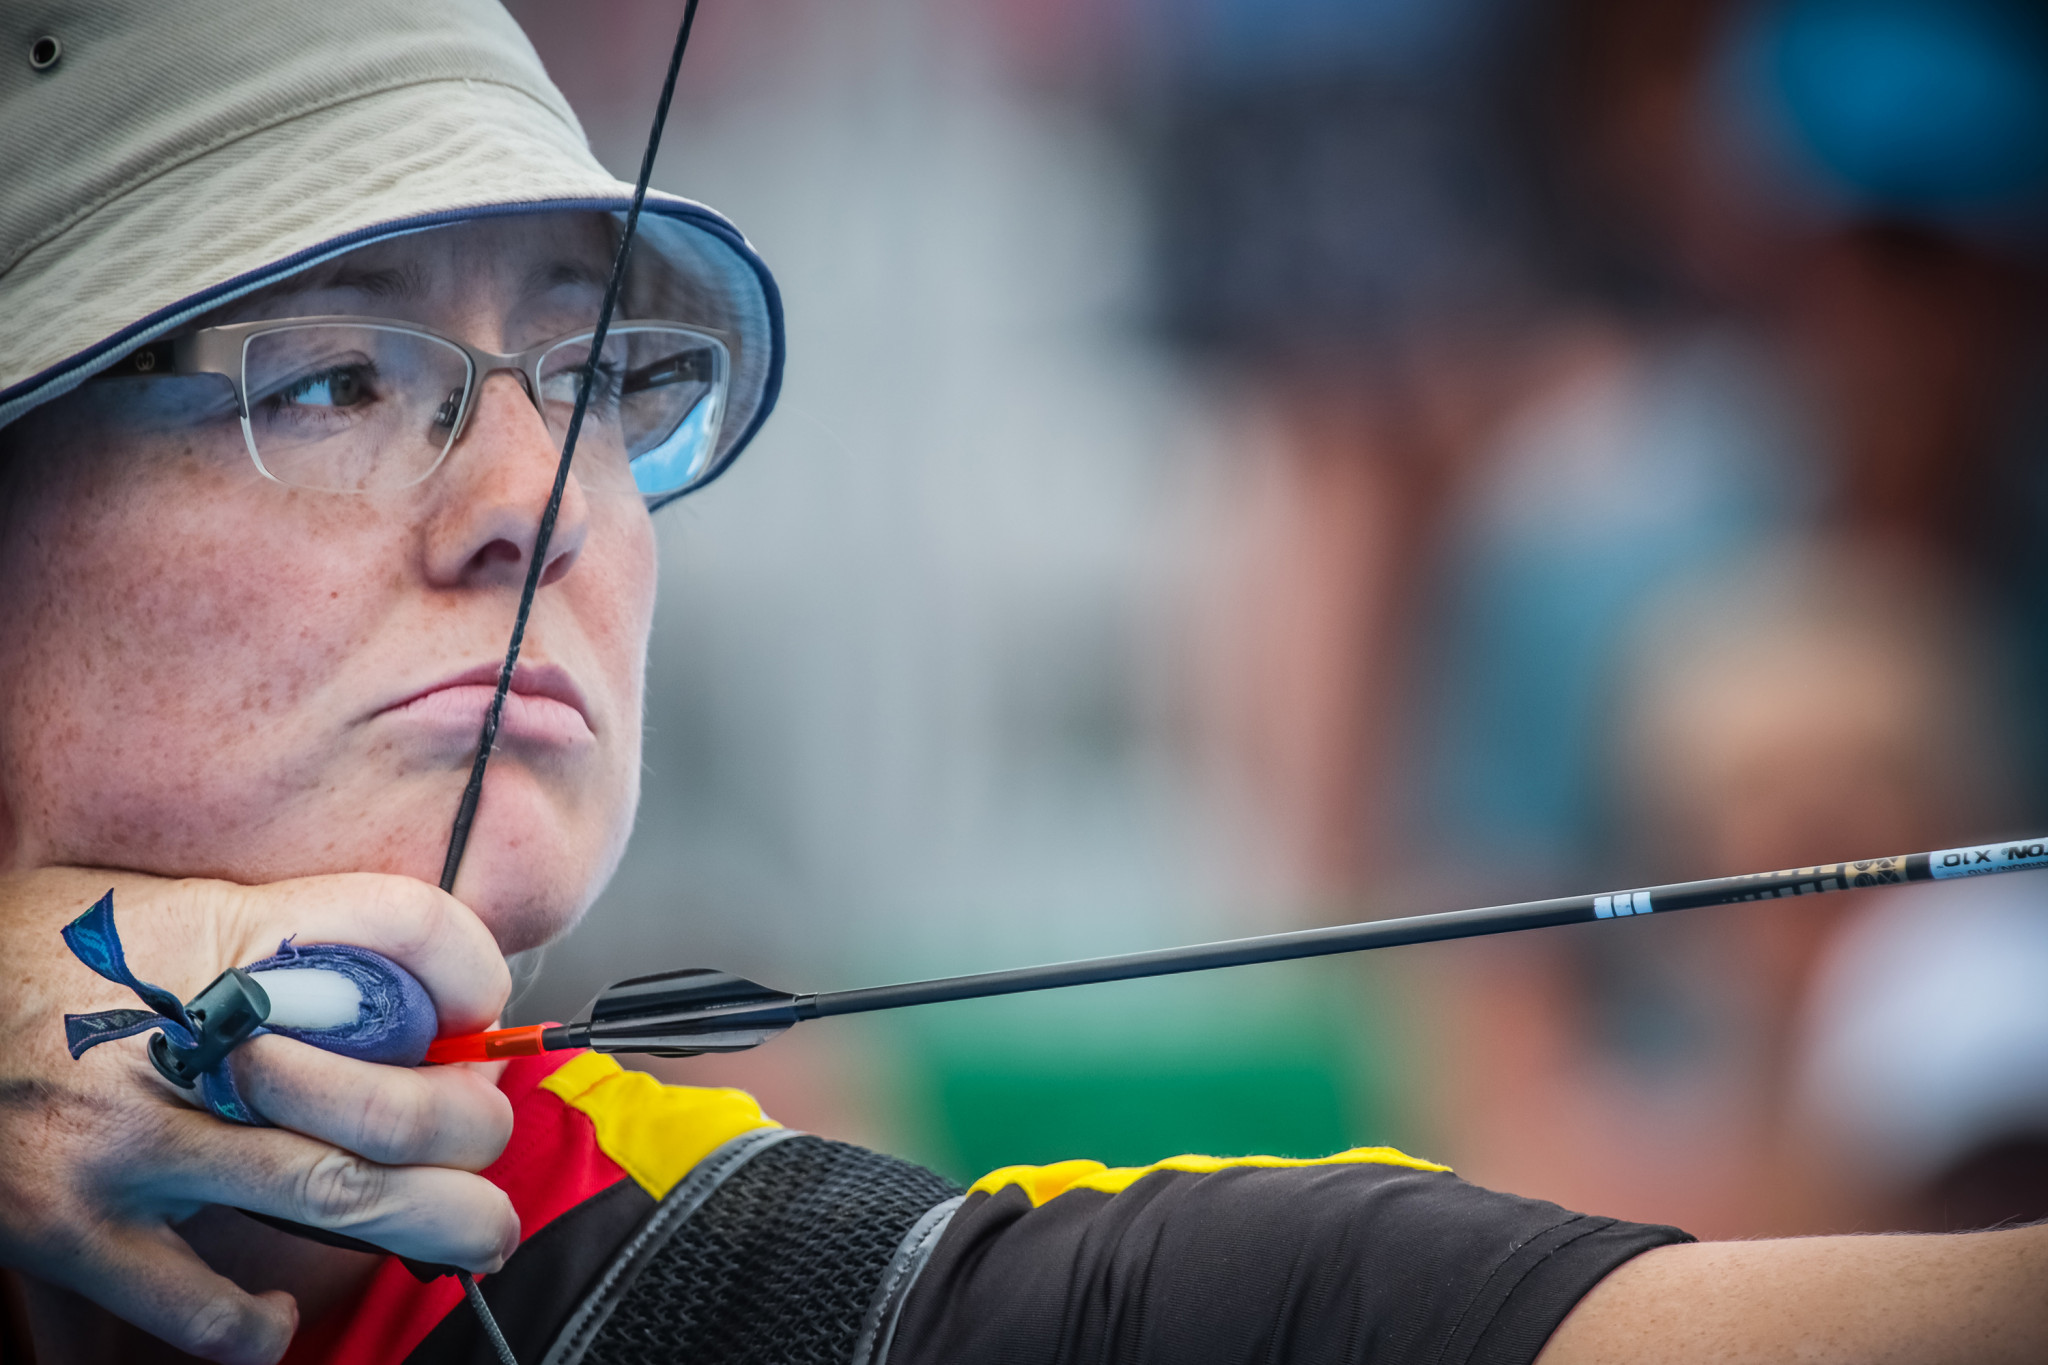 Olympic silver medallist Lisa Unruh progressed in the women's recurve competition ©Getty Images